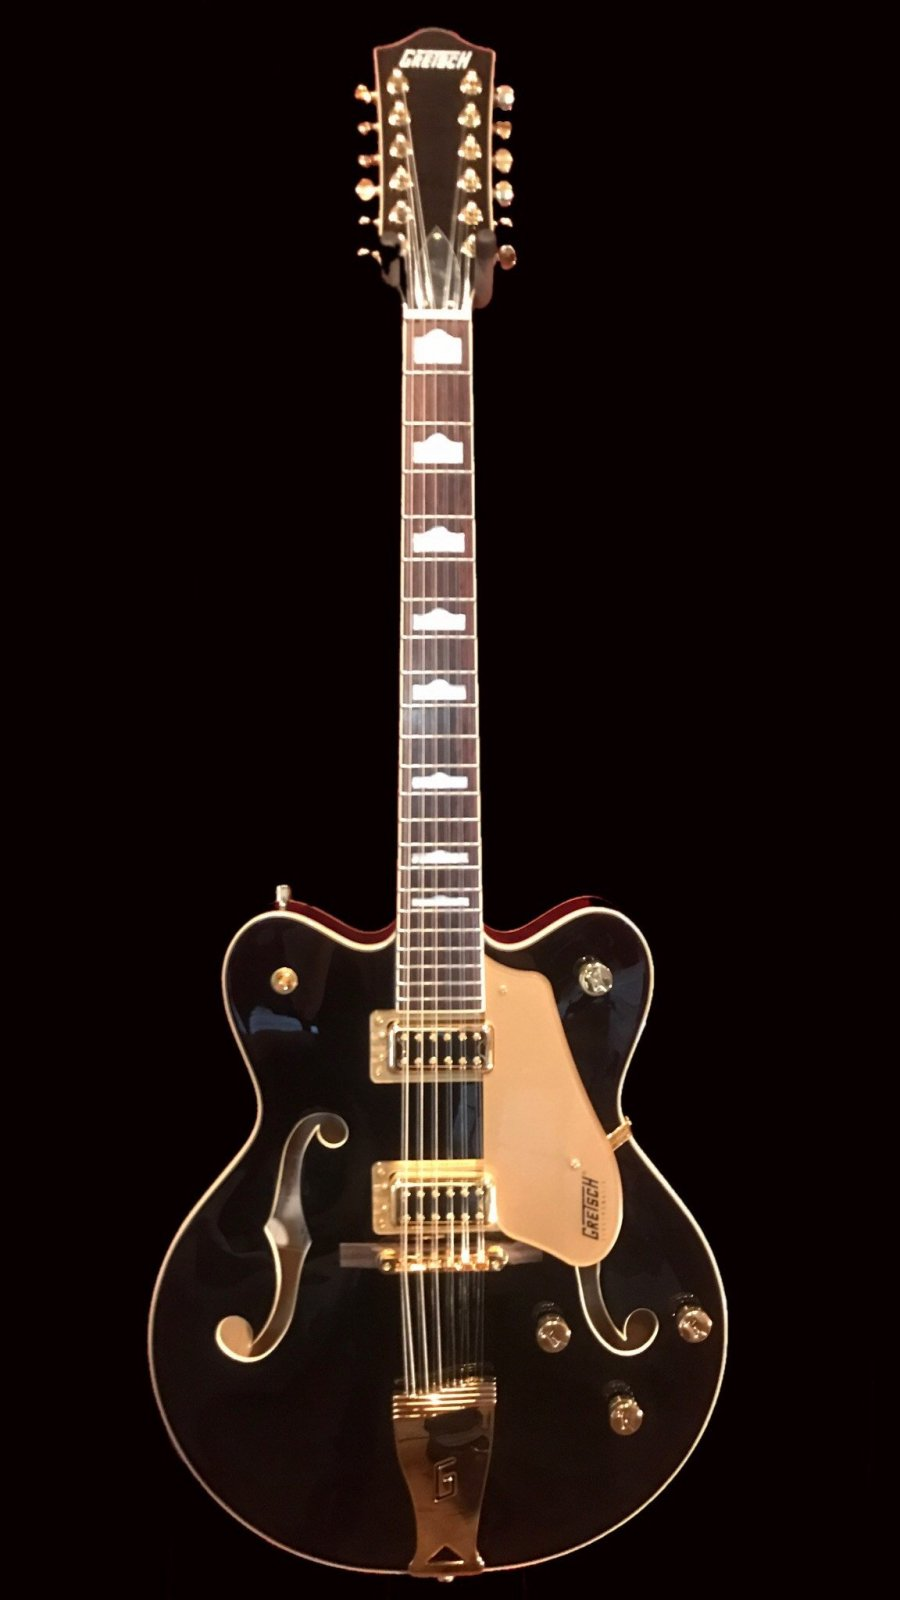 Gretsch G5422G-12 ELECTROMATIC® HOLLOW BODY DOUBLE-CUT 12-STRING